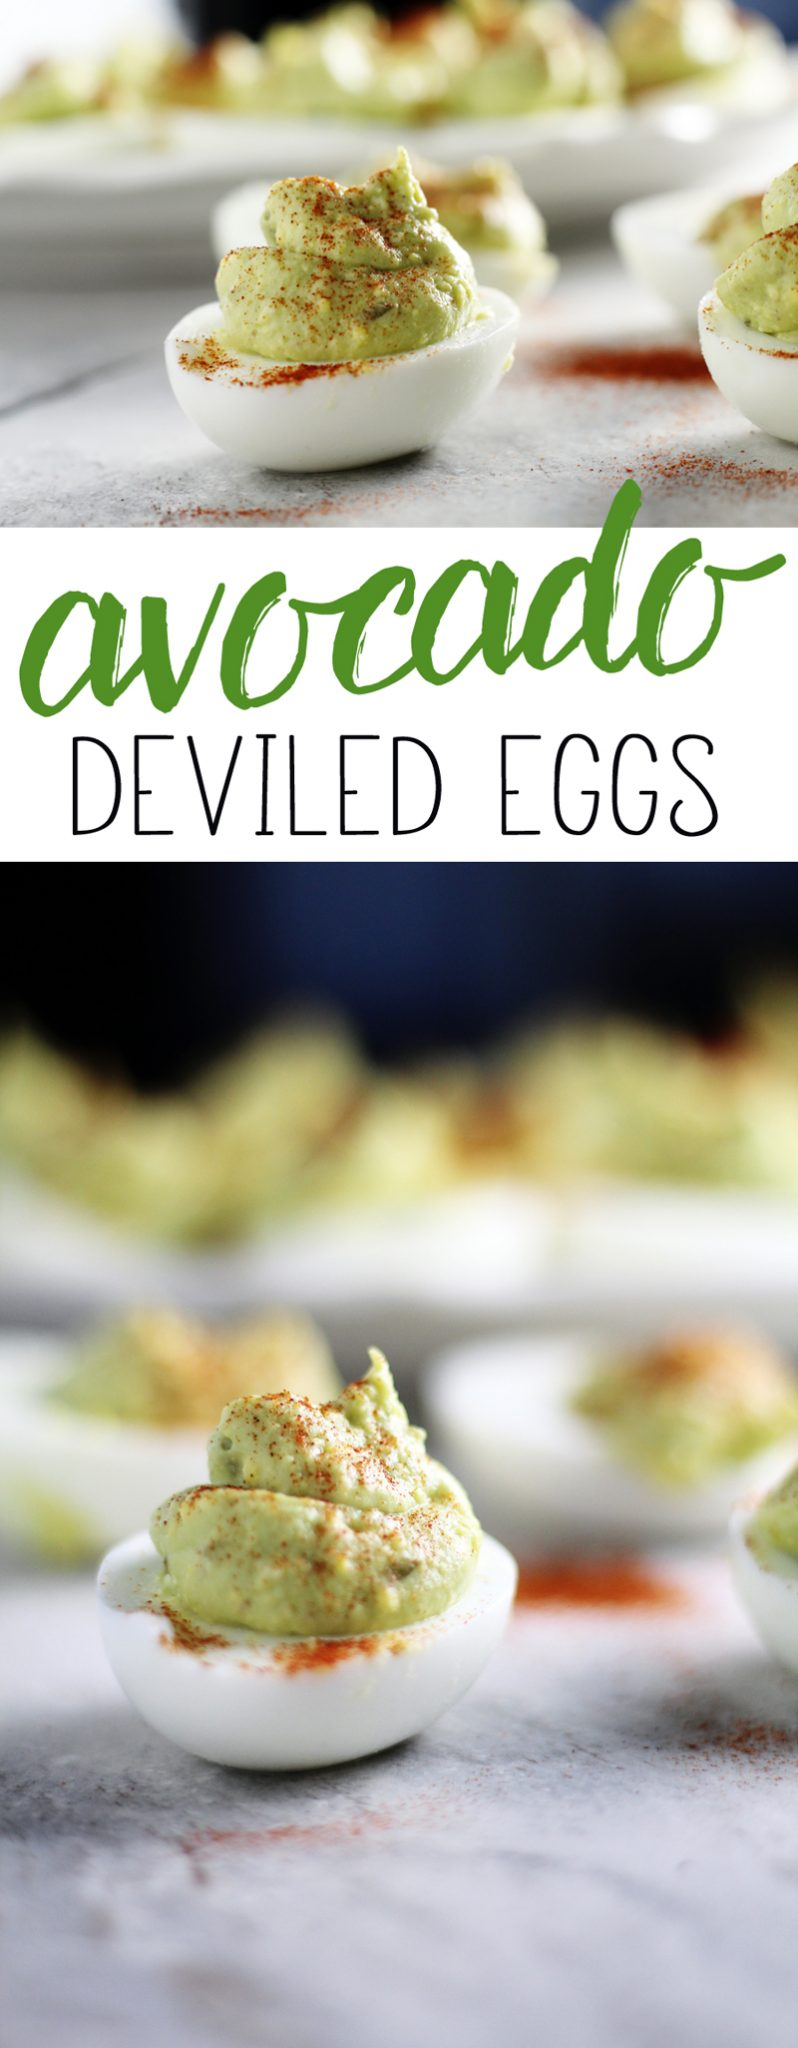 Southern Style Avocado Deviled Eggs - creamy and delicious with traditional deviled egg flavors and rich avocado. #simplyavocado #deviledeggs